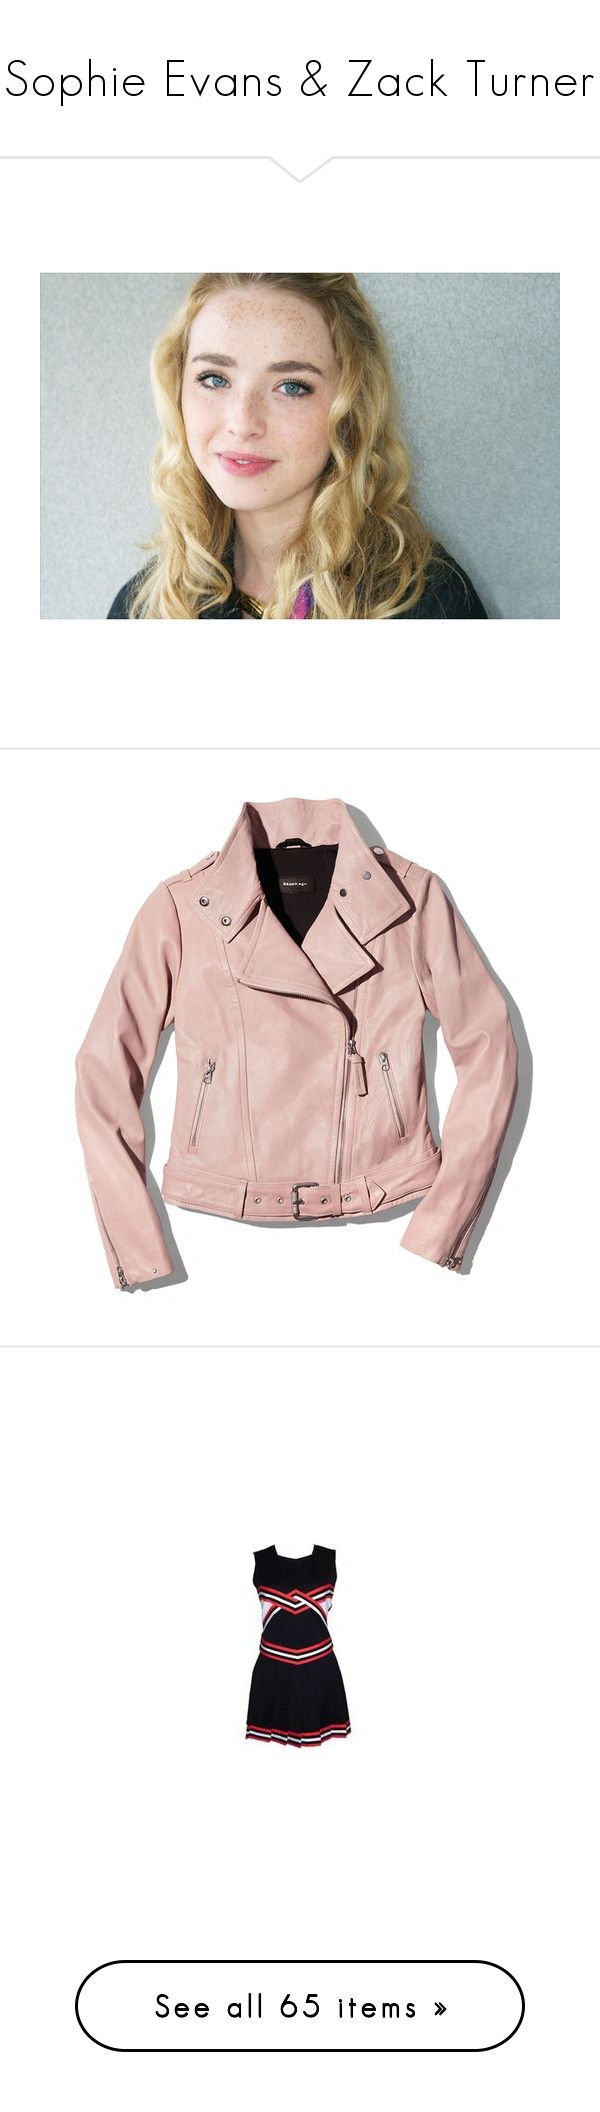 """""""Sophie Evans & Zack Turner"""" by desert-witch ❤ liked on Polyvore featuring freya mavor, freya, outerwear, jackets, tops, mackage jacket, pink jacket, moto biker jacket, rider leather jacket and pink biker jacket"""